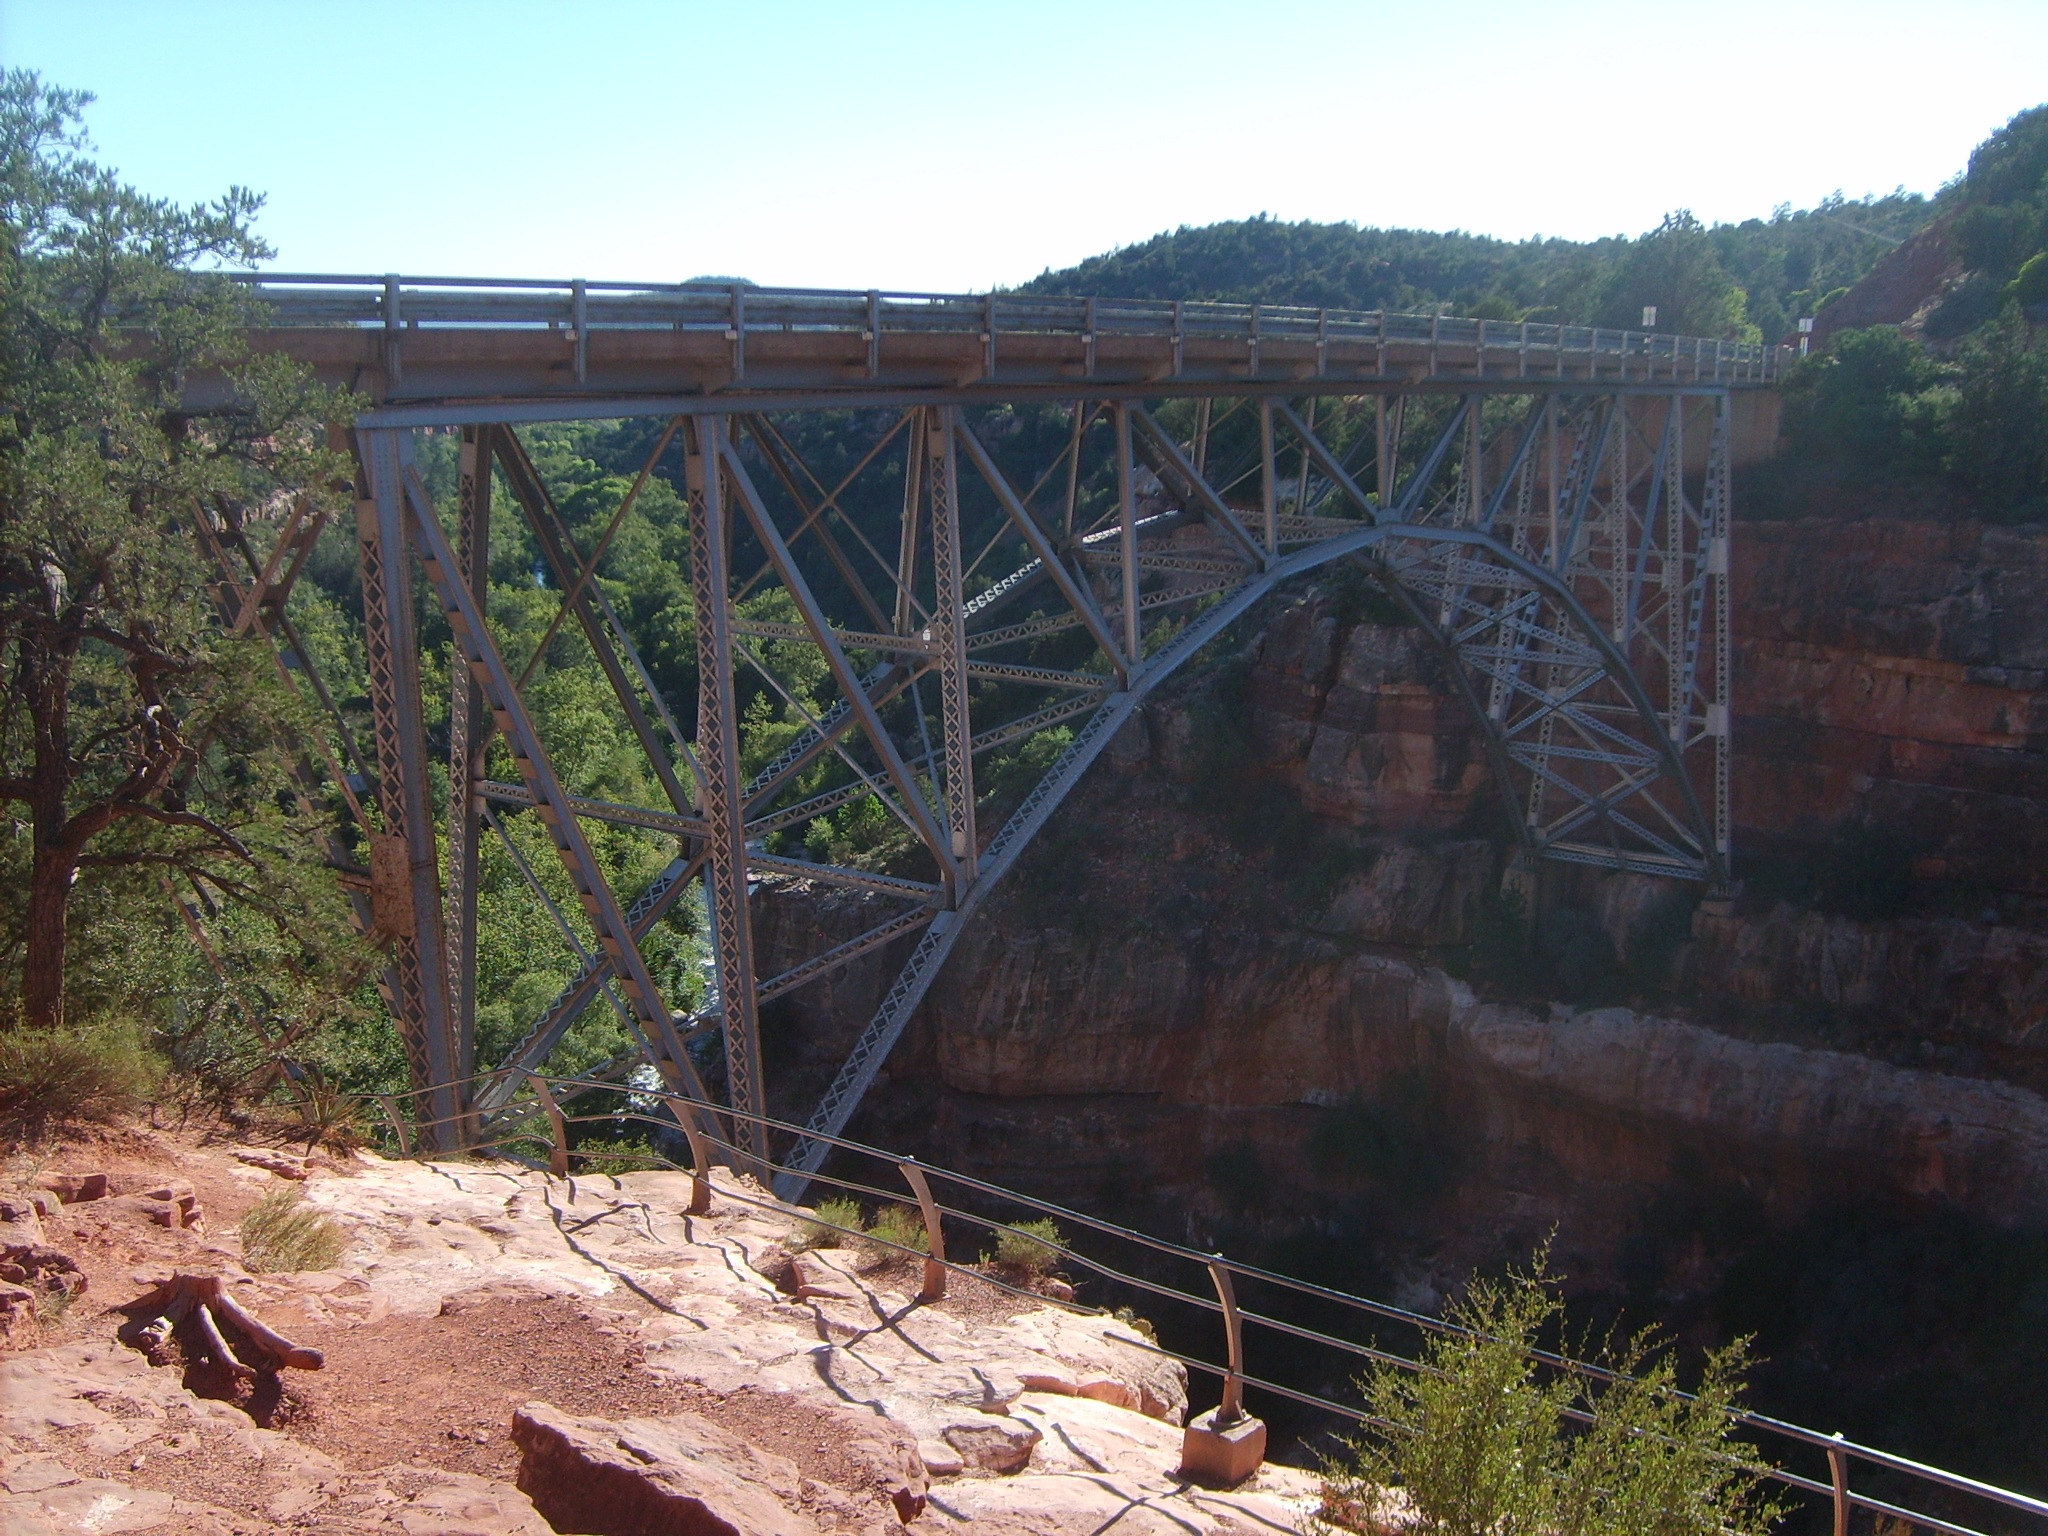 Bridge to Sedona by William Peters